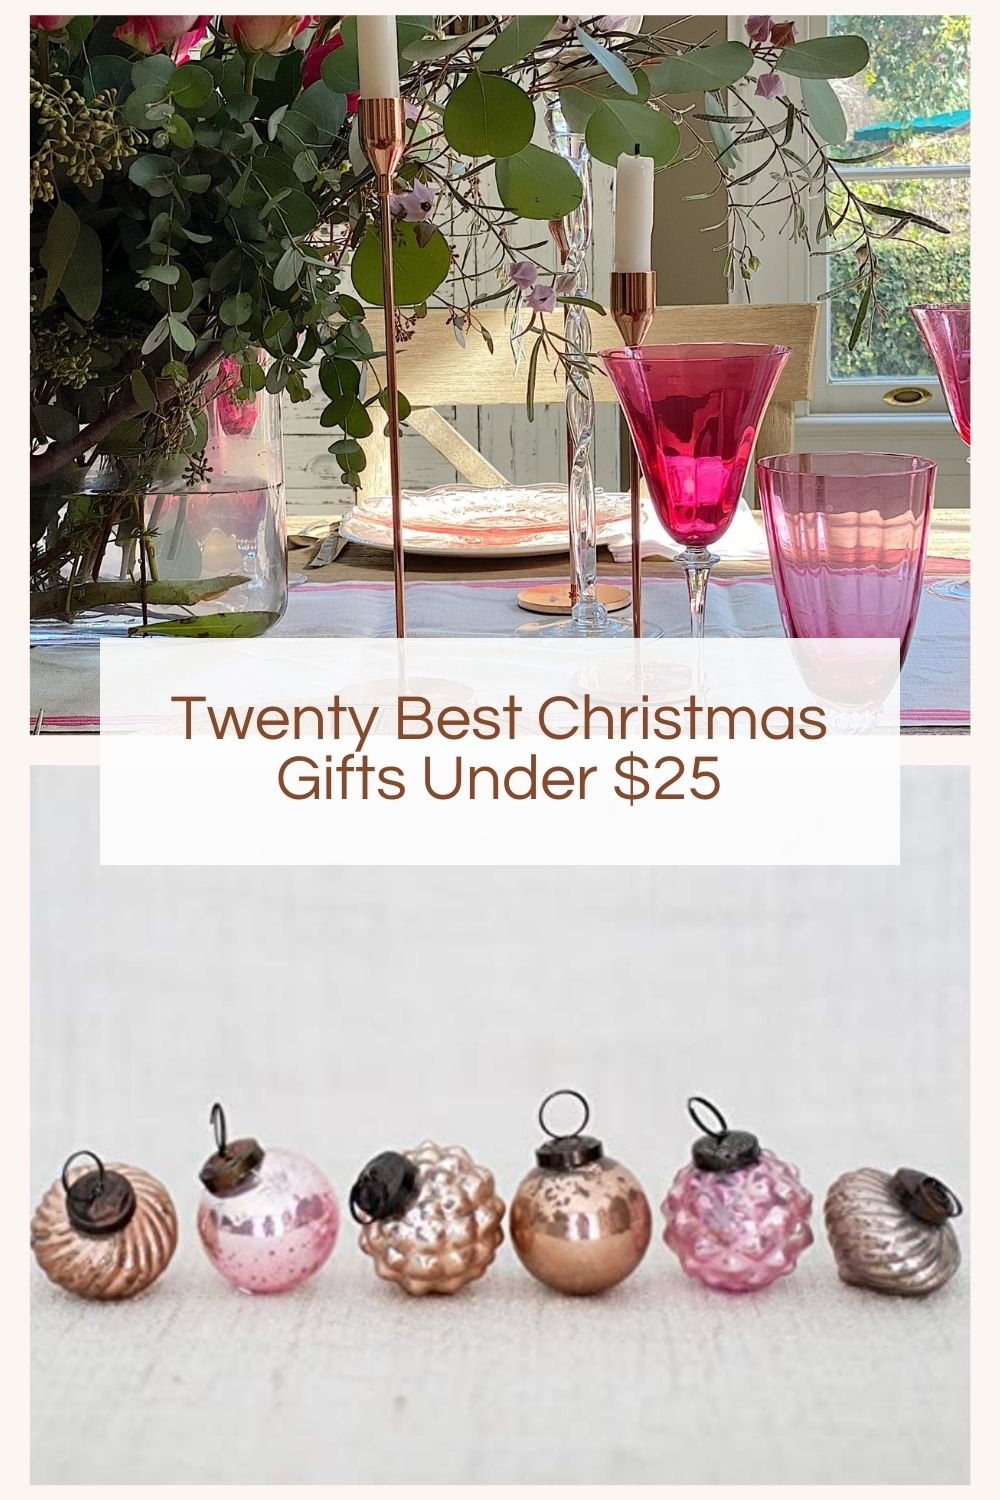 Today I am sharing my 20 best Christmas gift ideas. They are inexpensive and my favorites and gifts I think all of you might like.